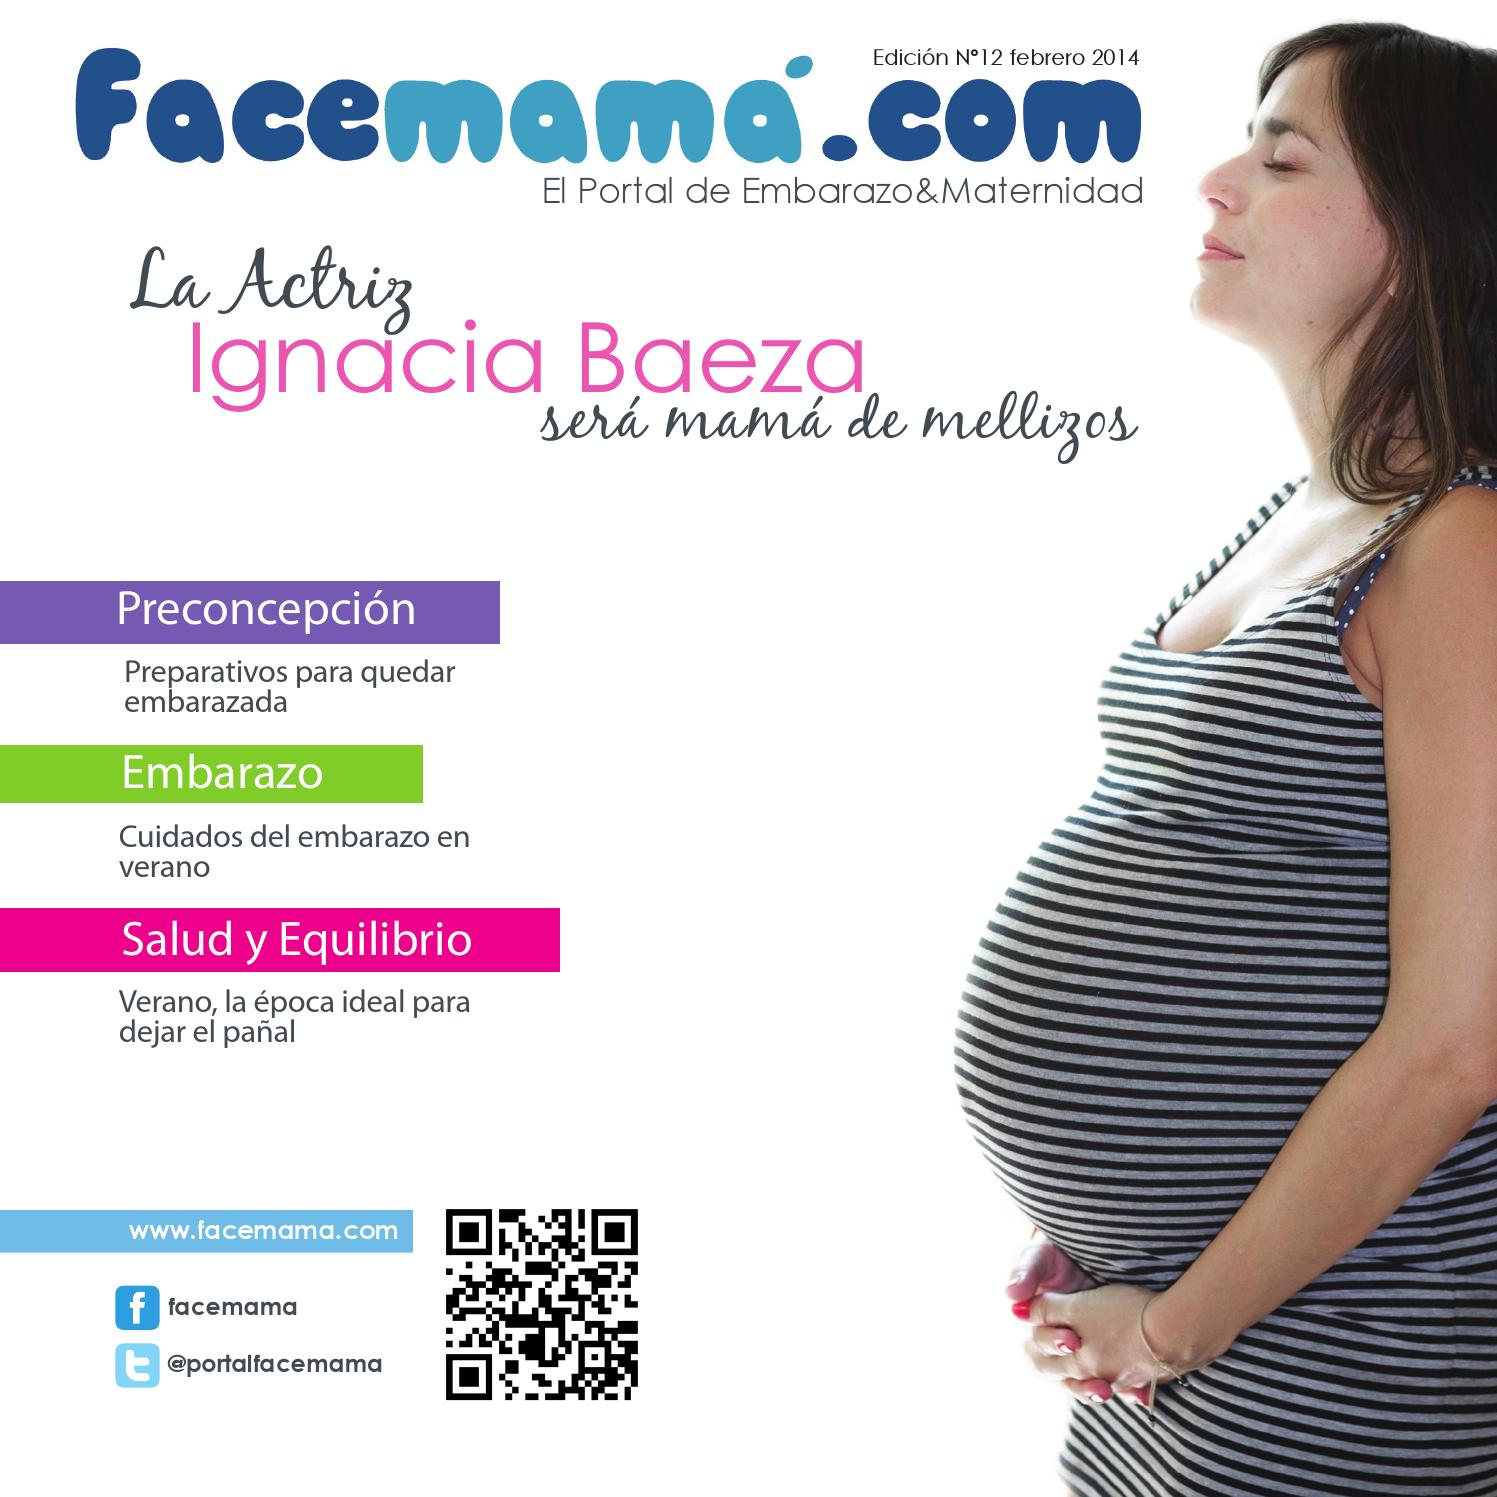 Revista Facemamcom Edicin 12 By Facemama Com - Issuu-7838